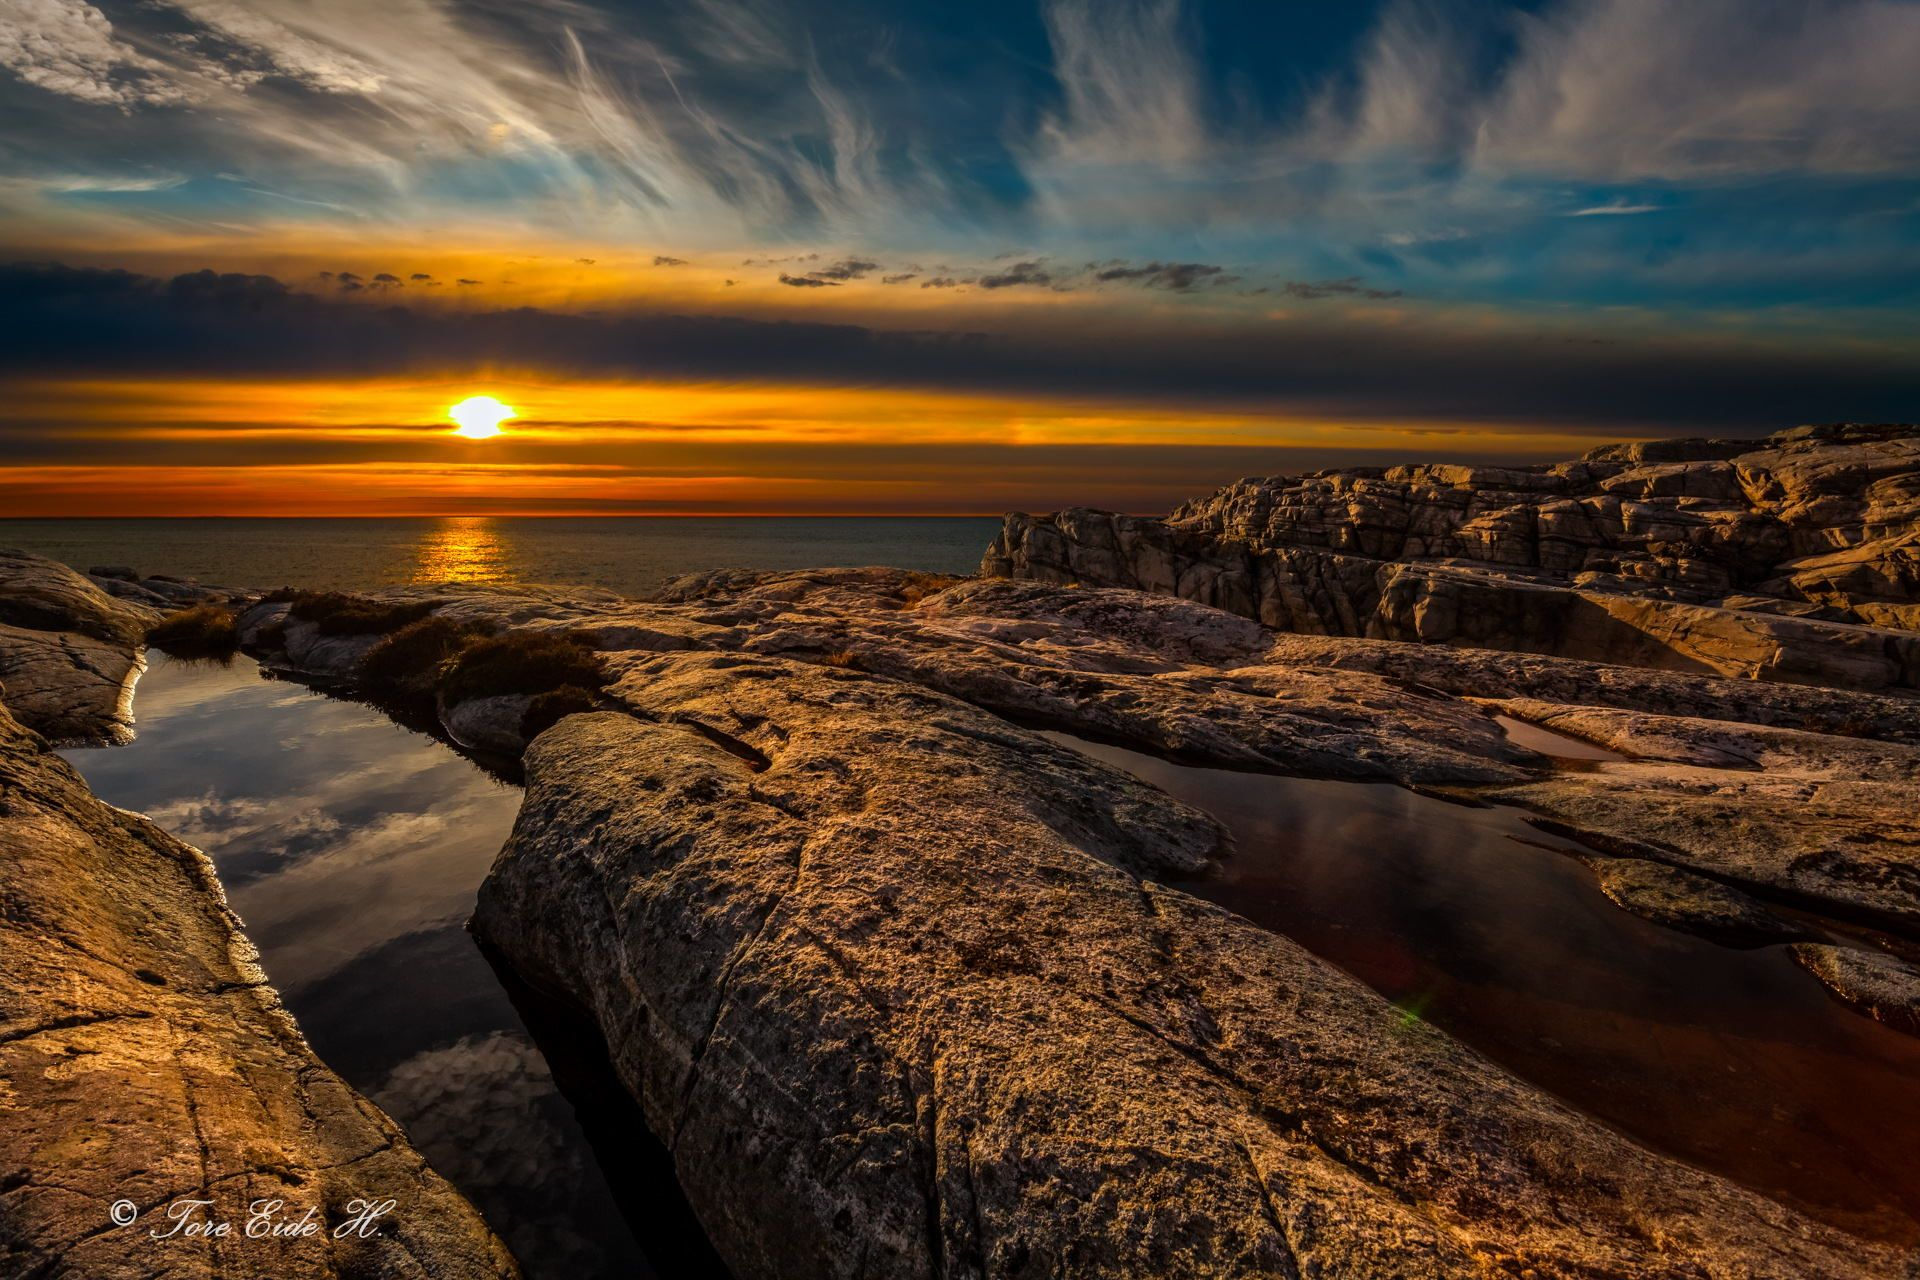 Photograph Colourful End by Tore H. on 500px